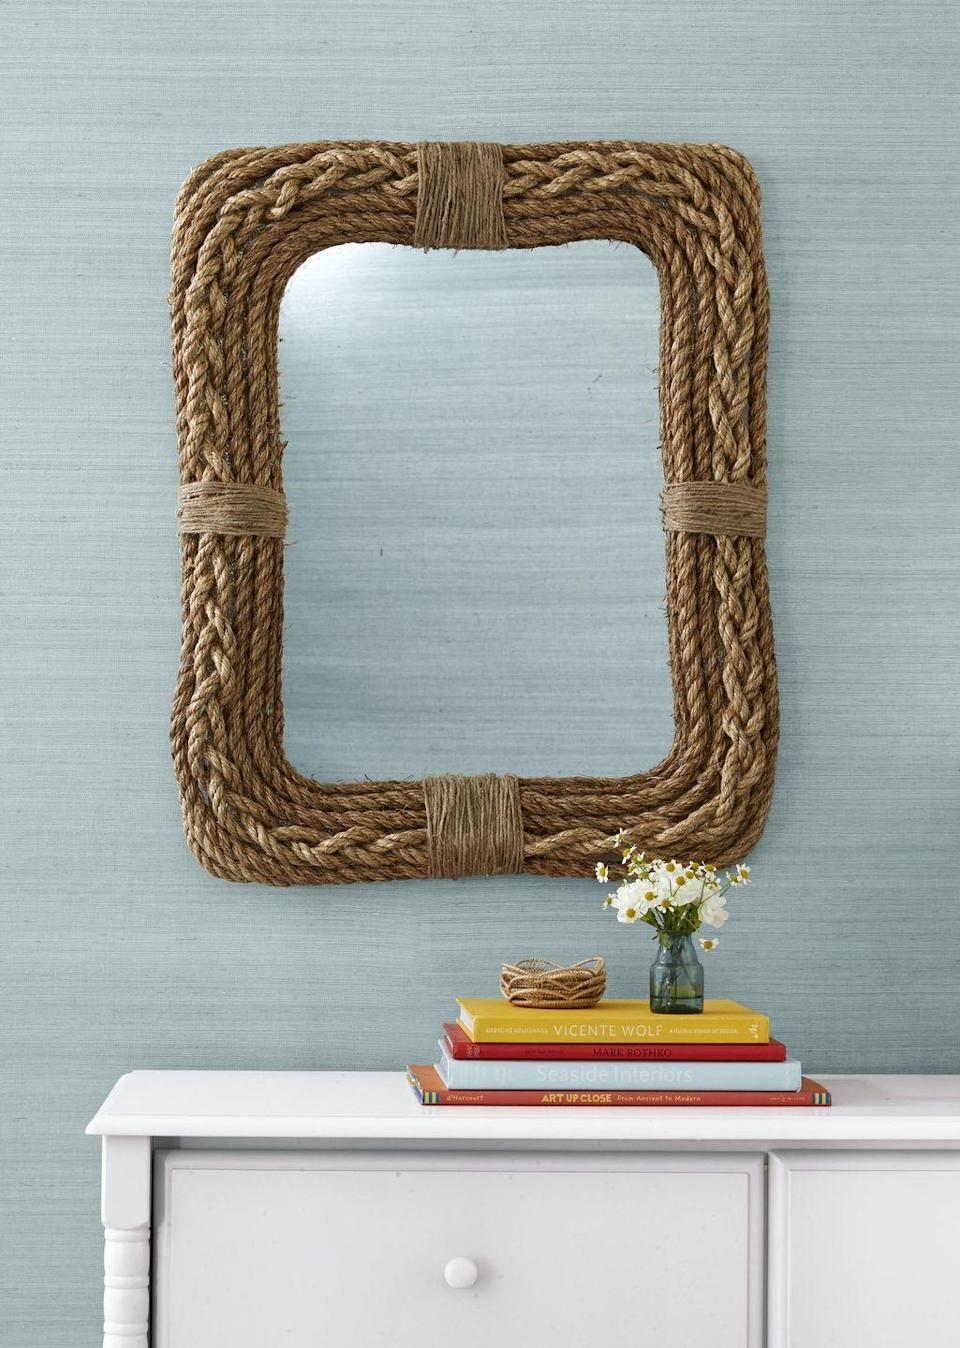 <p>Give a boring, ho-hum, mirror new life by covering it in different sizes and colors of rope.<br><strong><br>To make: </strong>Cover frame of a mirror with 1/2- to 3/4-inch manila rope,<br>braiding one section for a decorative effect and adhering rope with hot-glue. Add a decorative band to center of top and sides with thin sisal rope.</p>